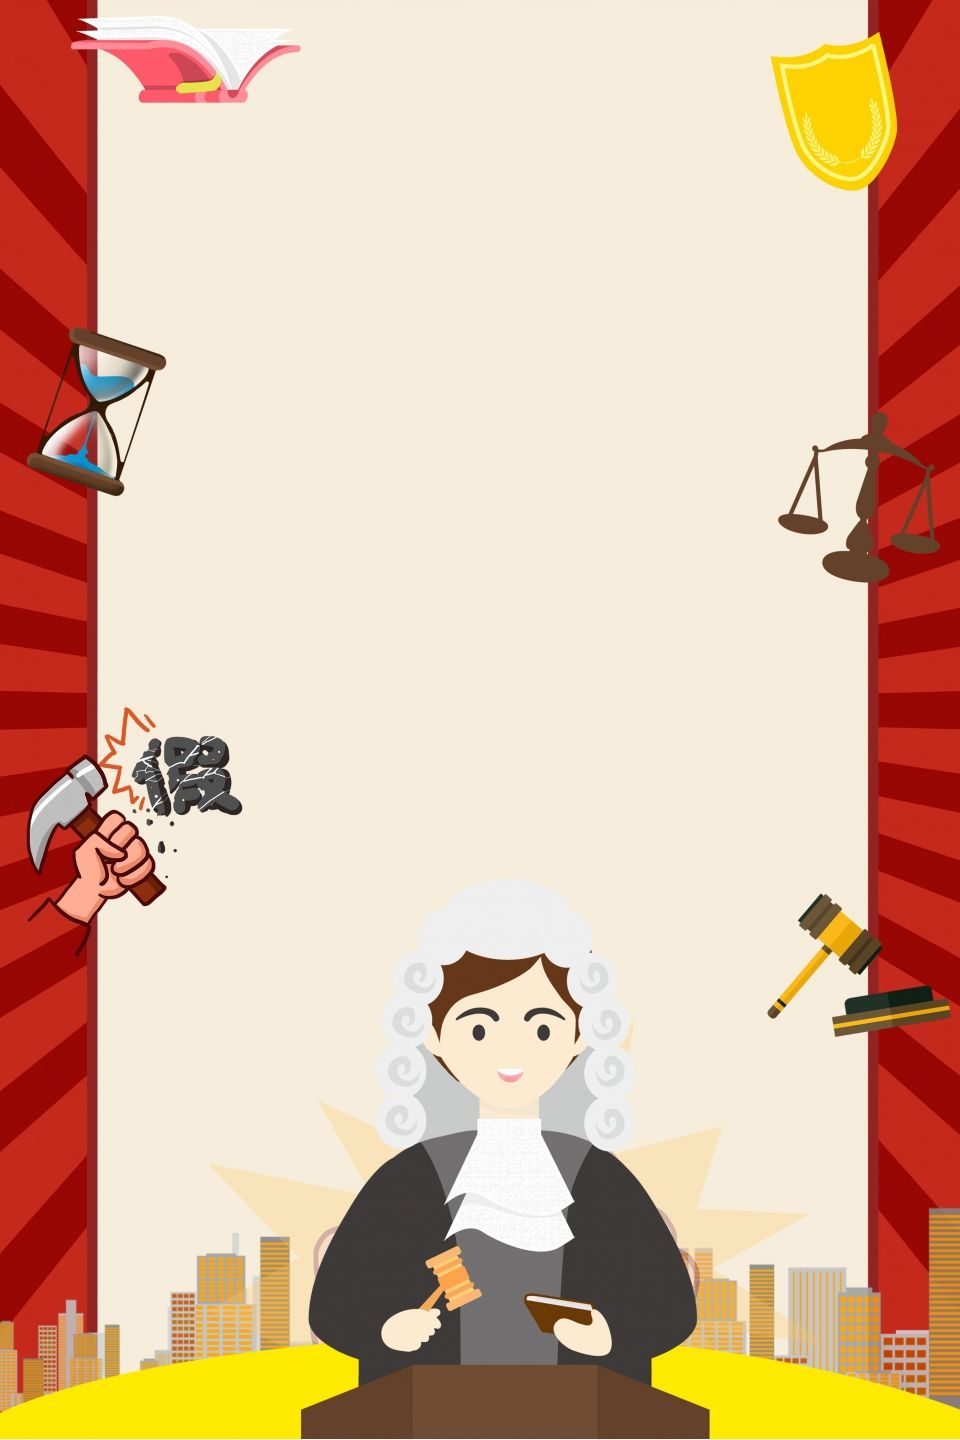 Creative Cartoon 315 Consumer Rights Day Composite Background